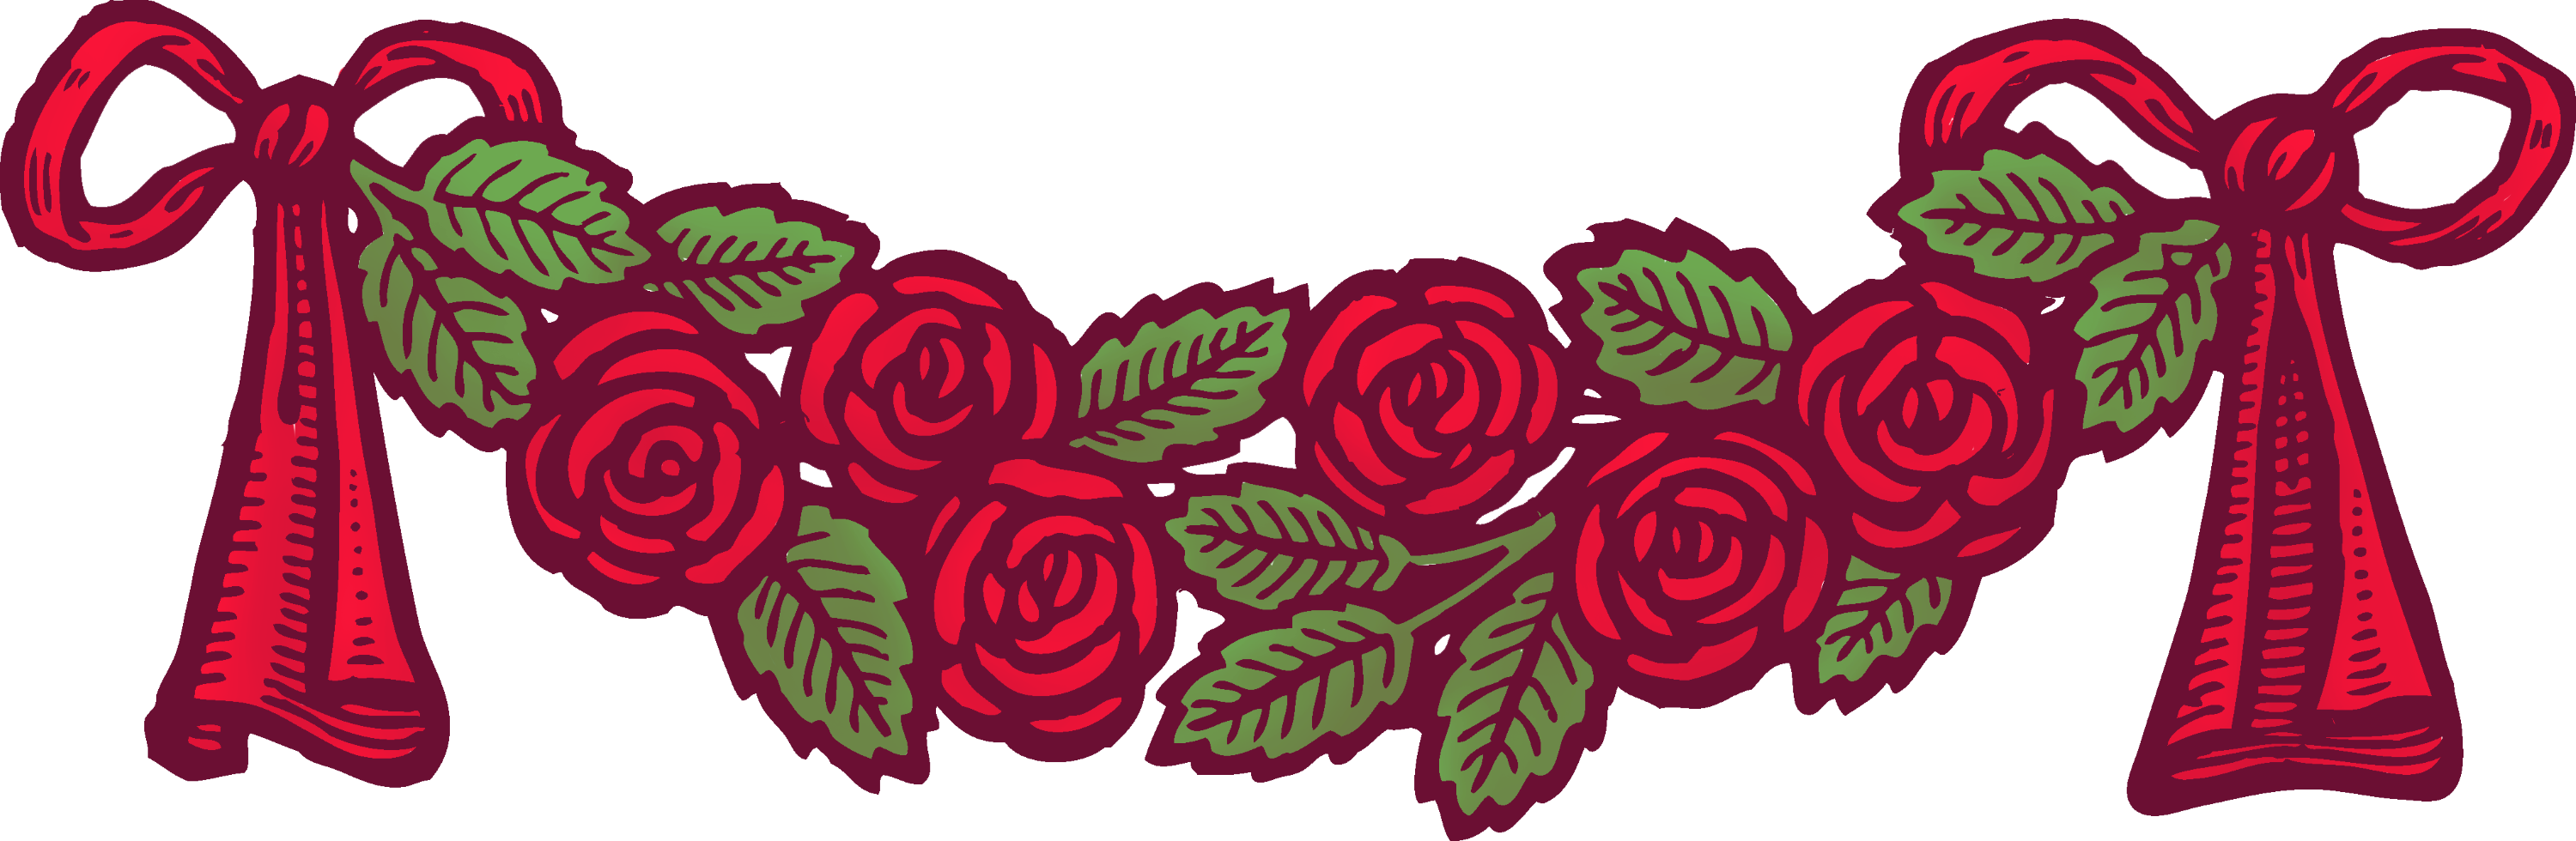 Preferred Vintage Red Roses With Ribbons Banner - Free Clip Art XR51